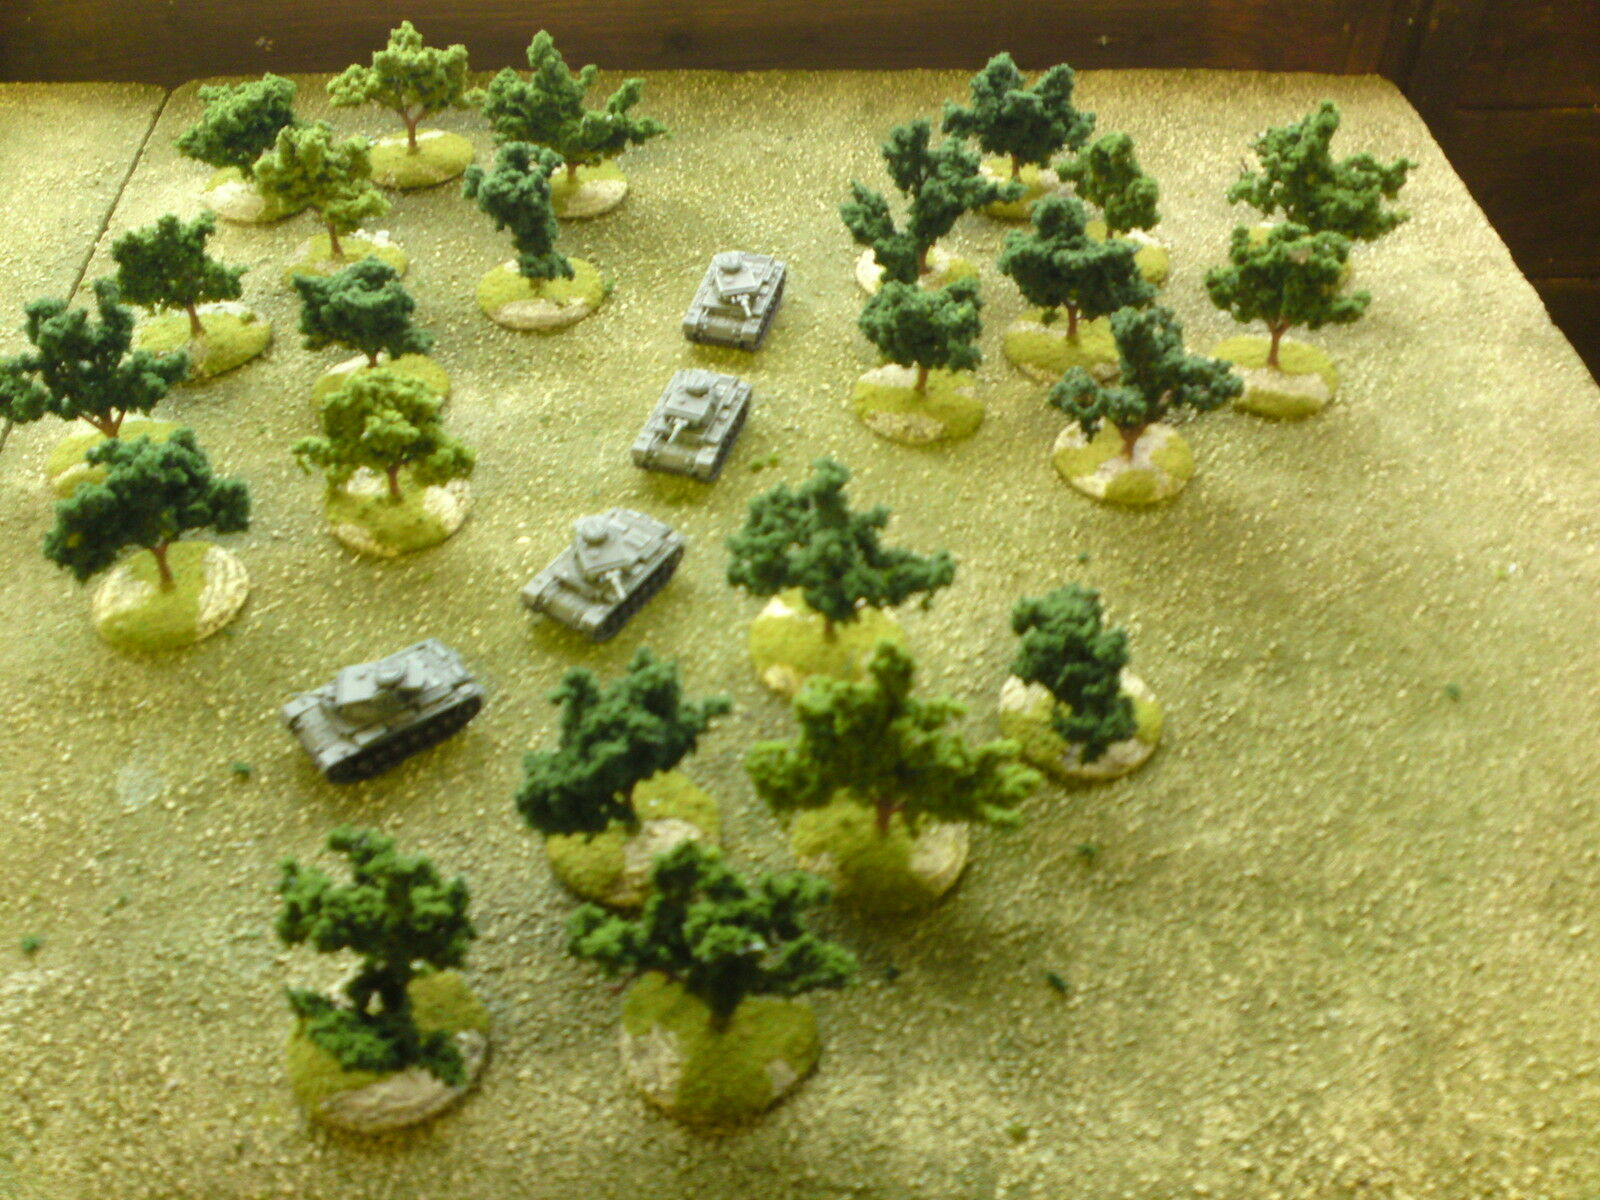 24 x 15mm sculptured trees suitable for flames of war